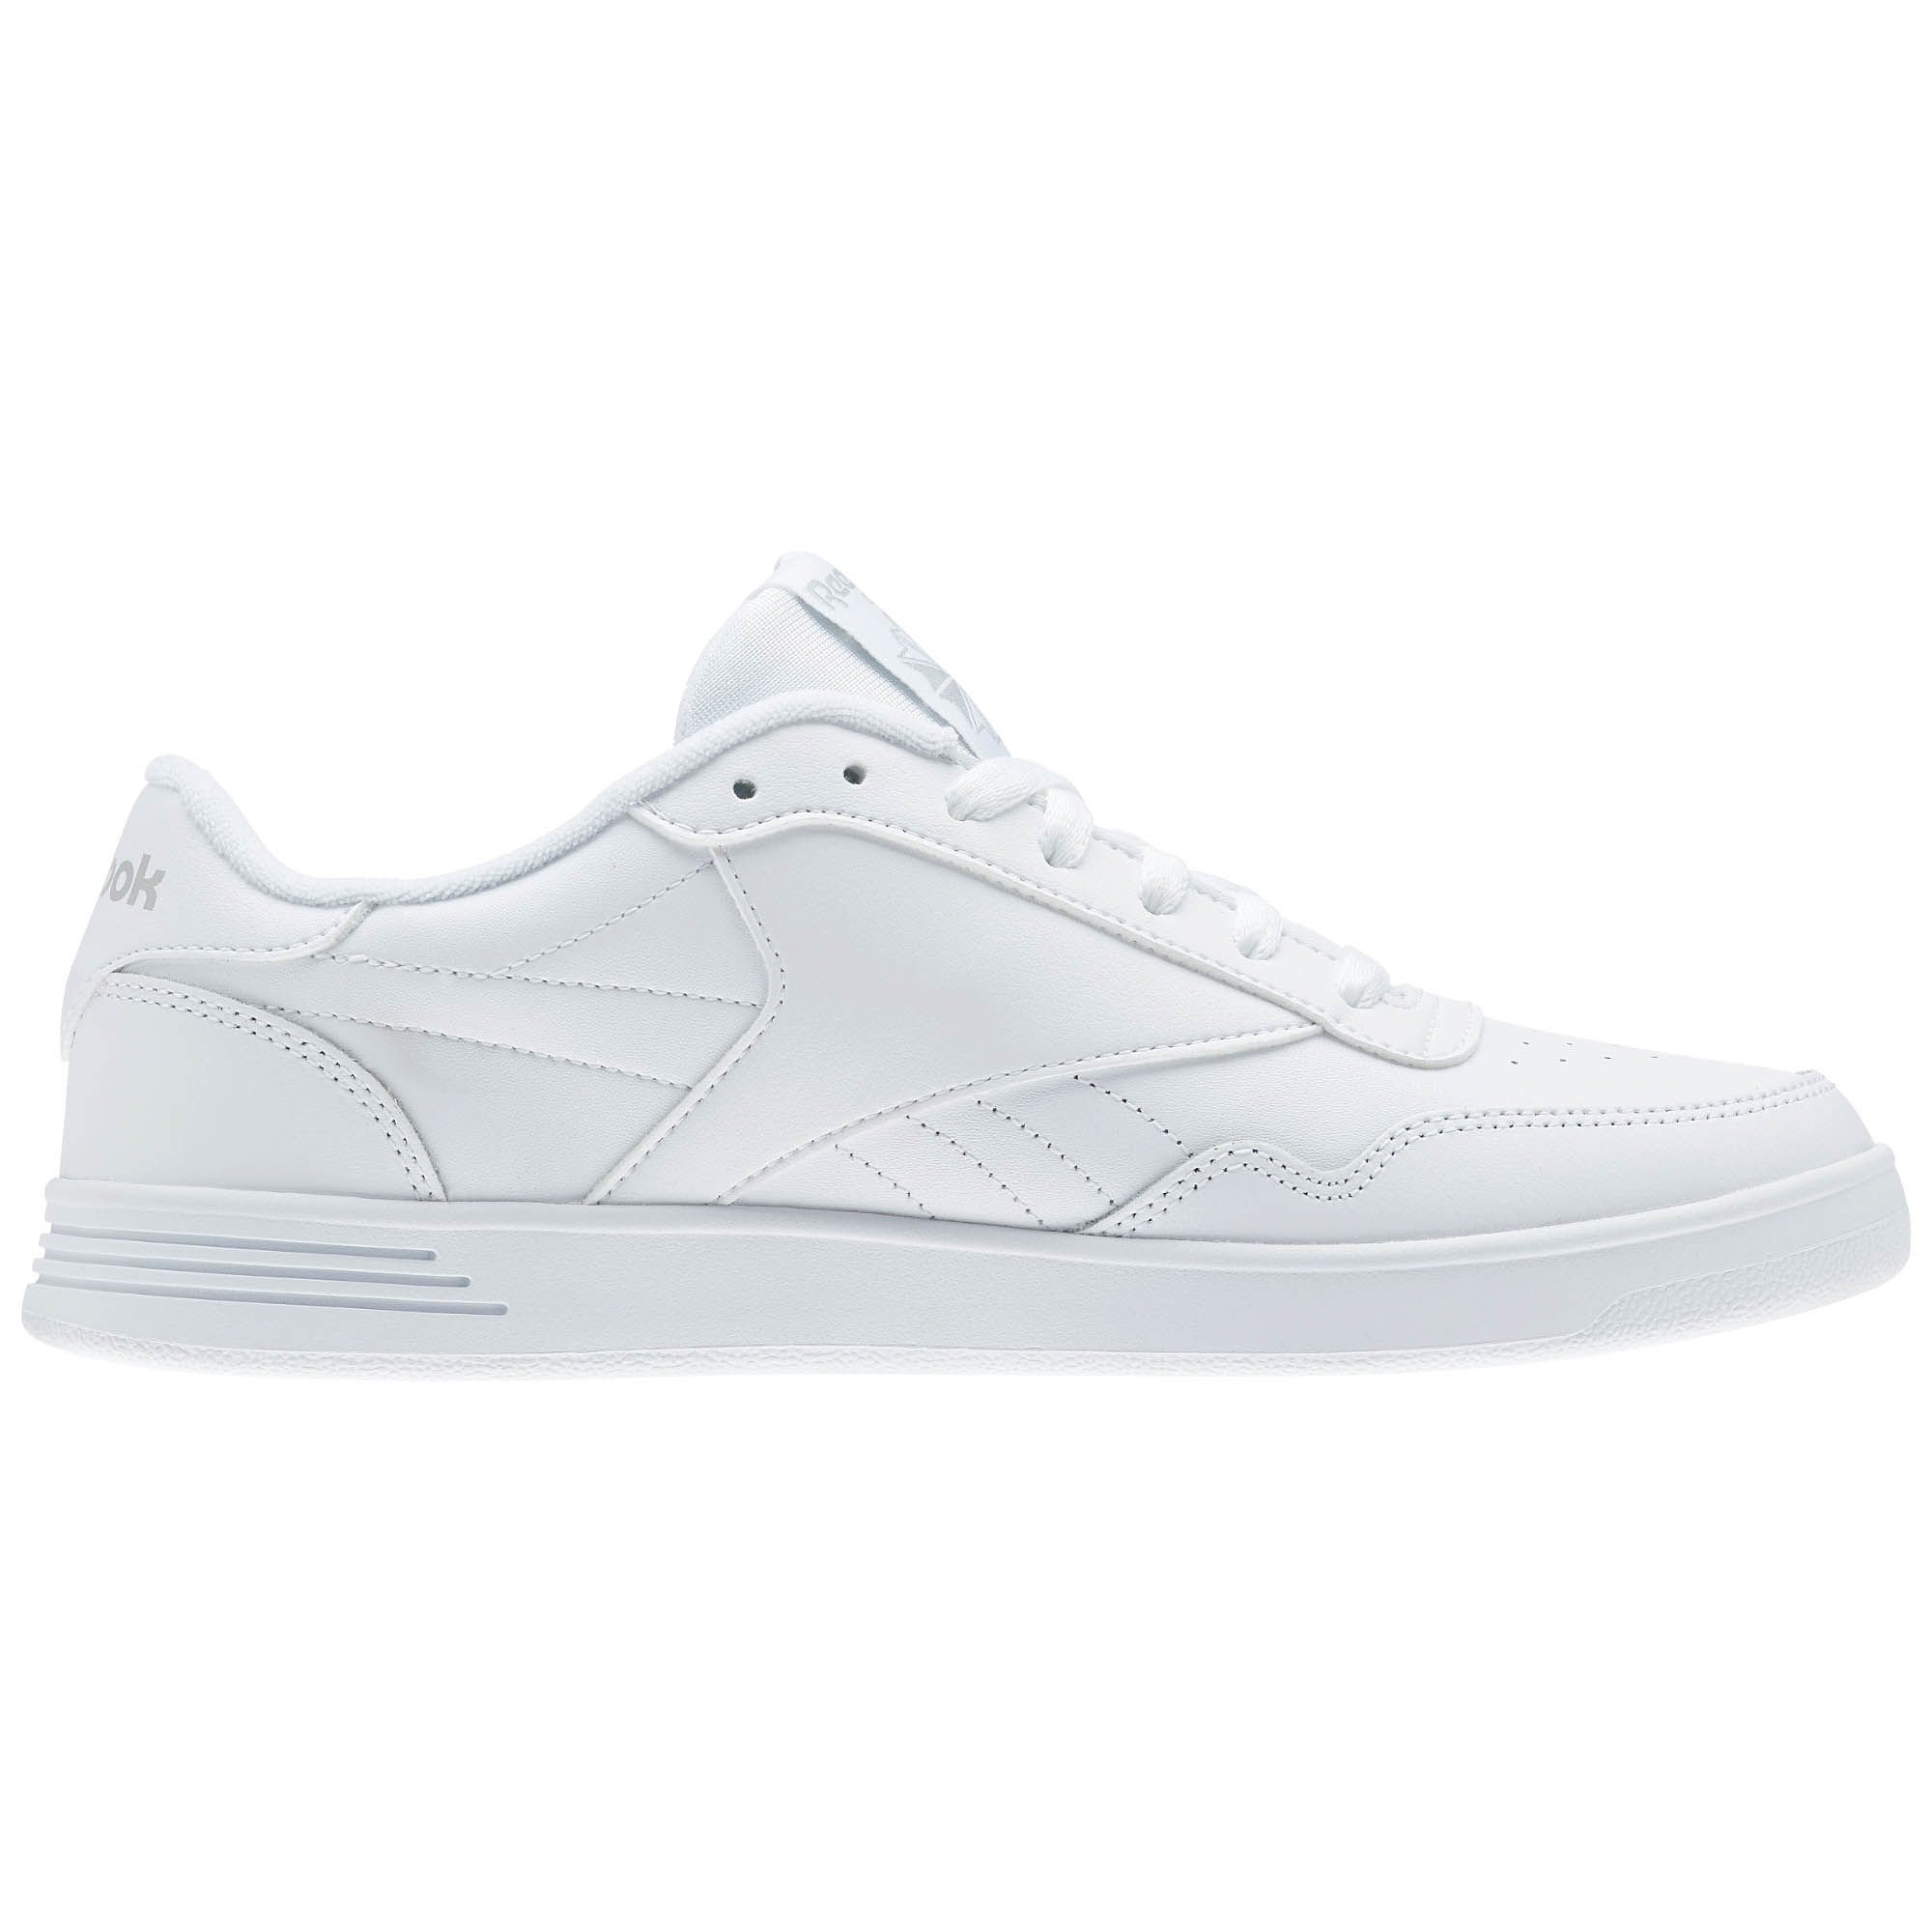 86b7c21d27a7 Reebok - Reebok Womens Club Memt Low Top Lace Up Fashion Sneakers -  Walmart.com